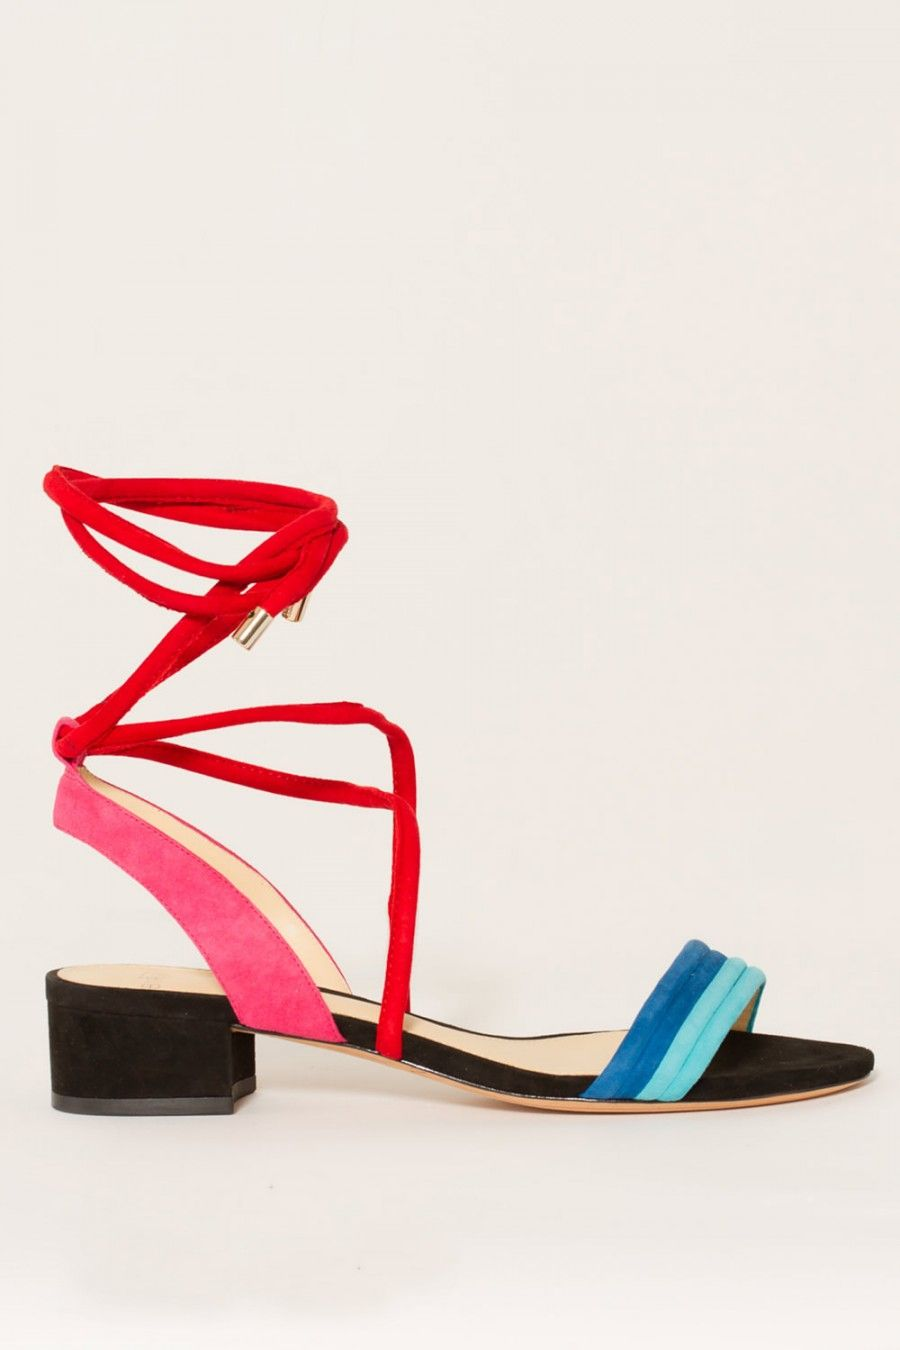 ALEXANDRE BIRMAN Aurora Colorblock Suede Lace-Up Sandals. #alexandrebirman # shoes #flats